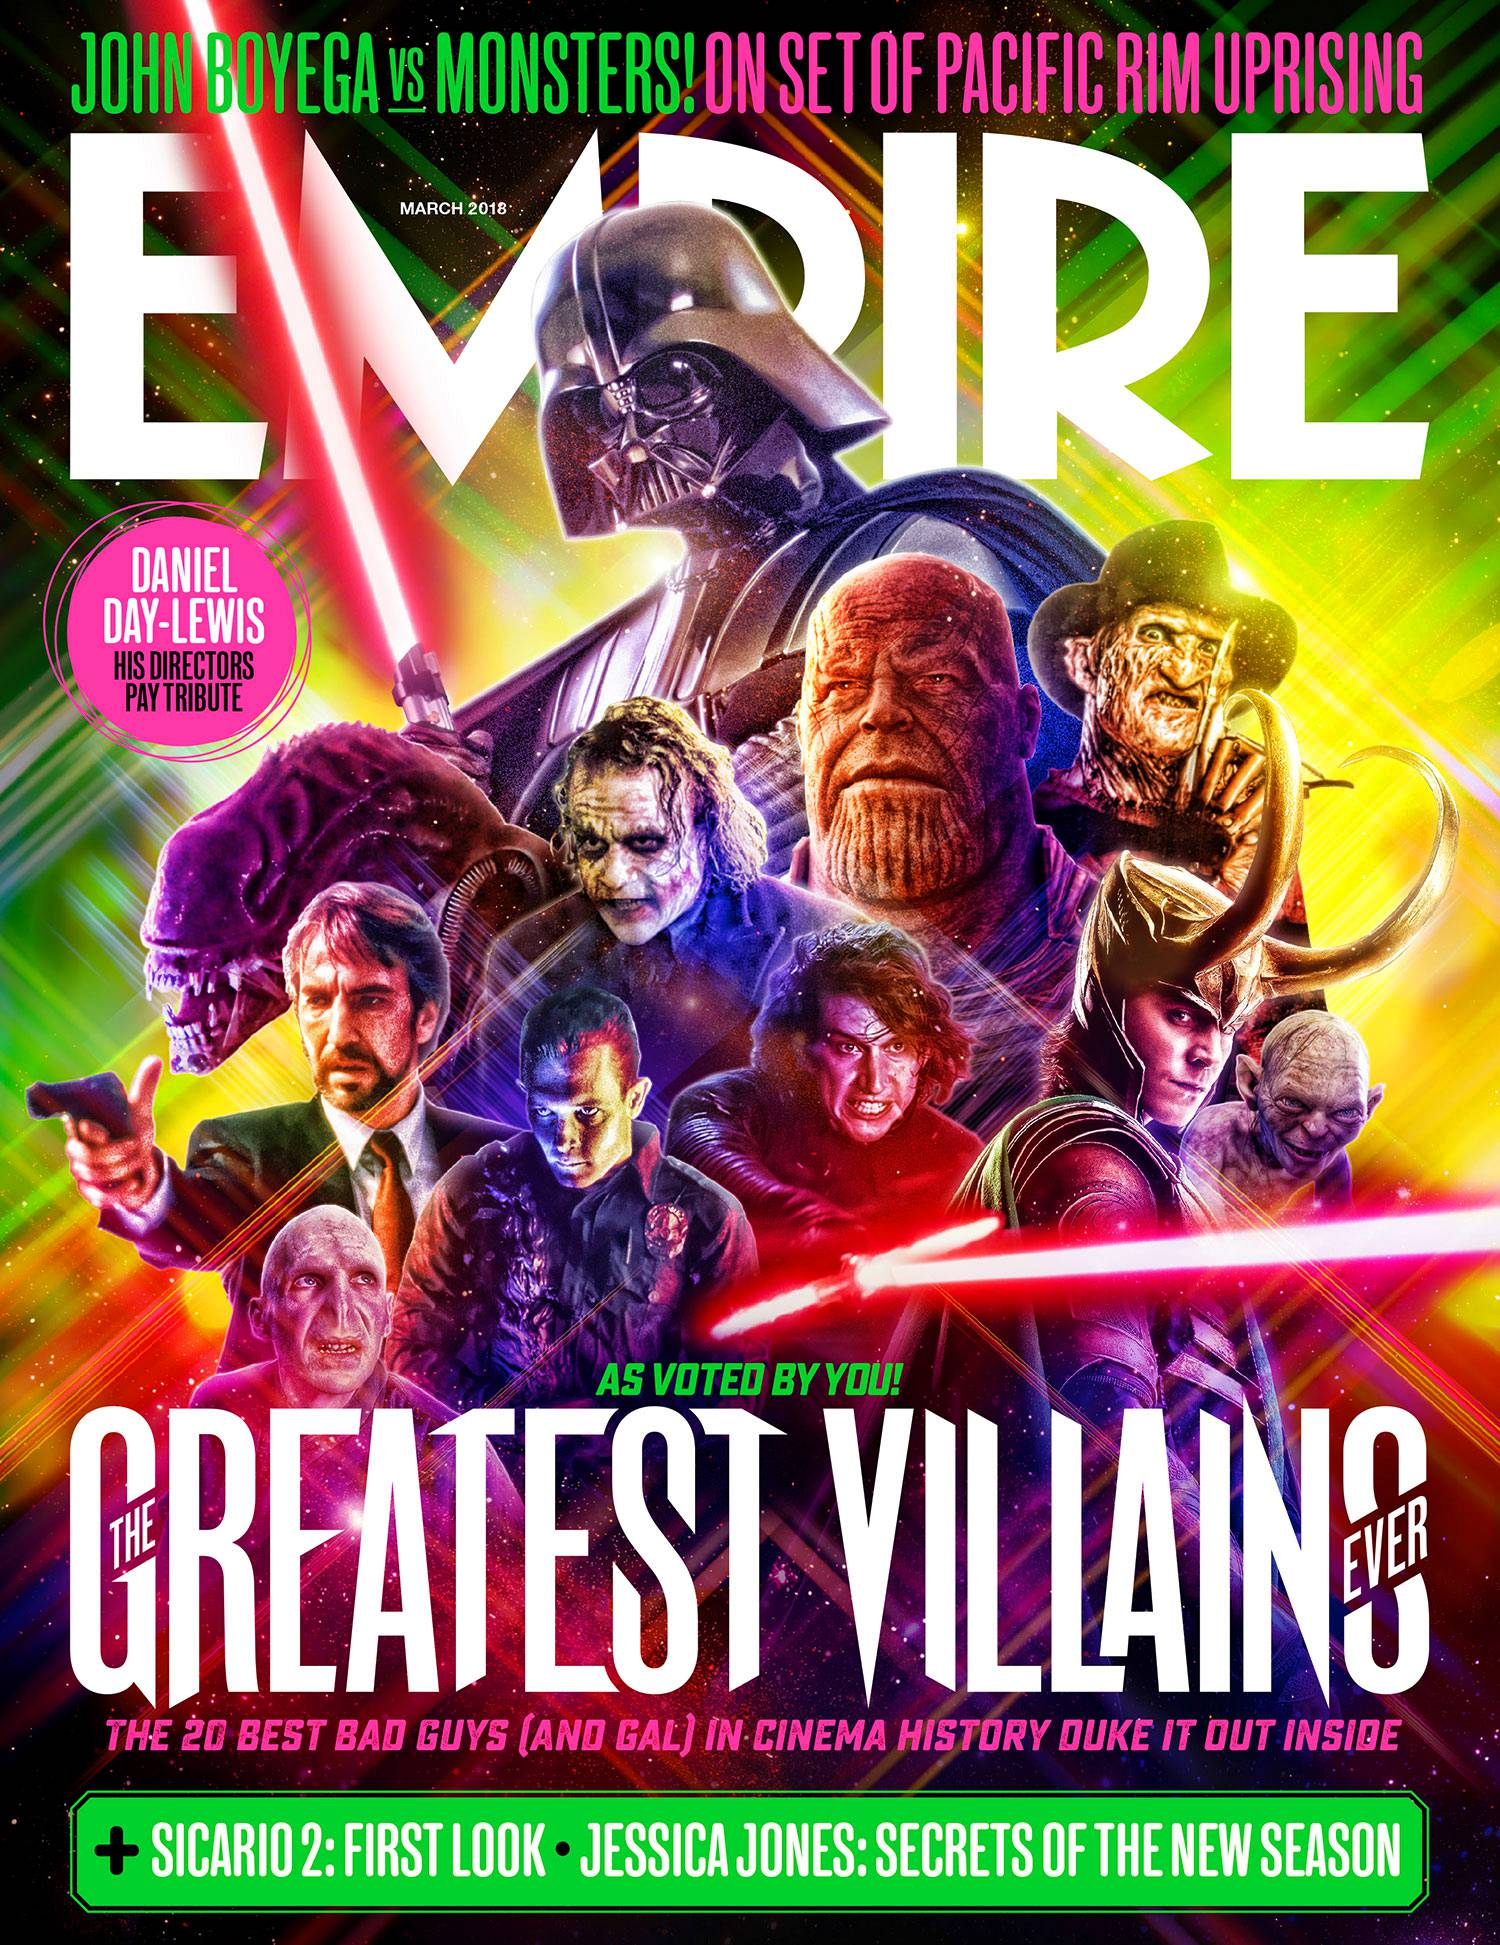 Empire Magazine Villains Cover Thanos